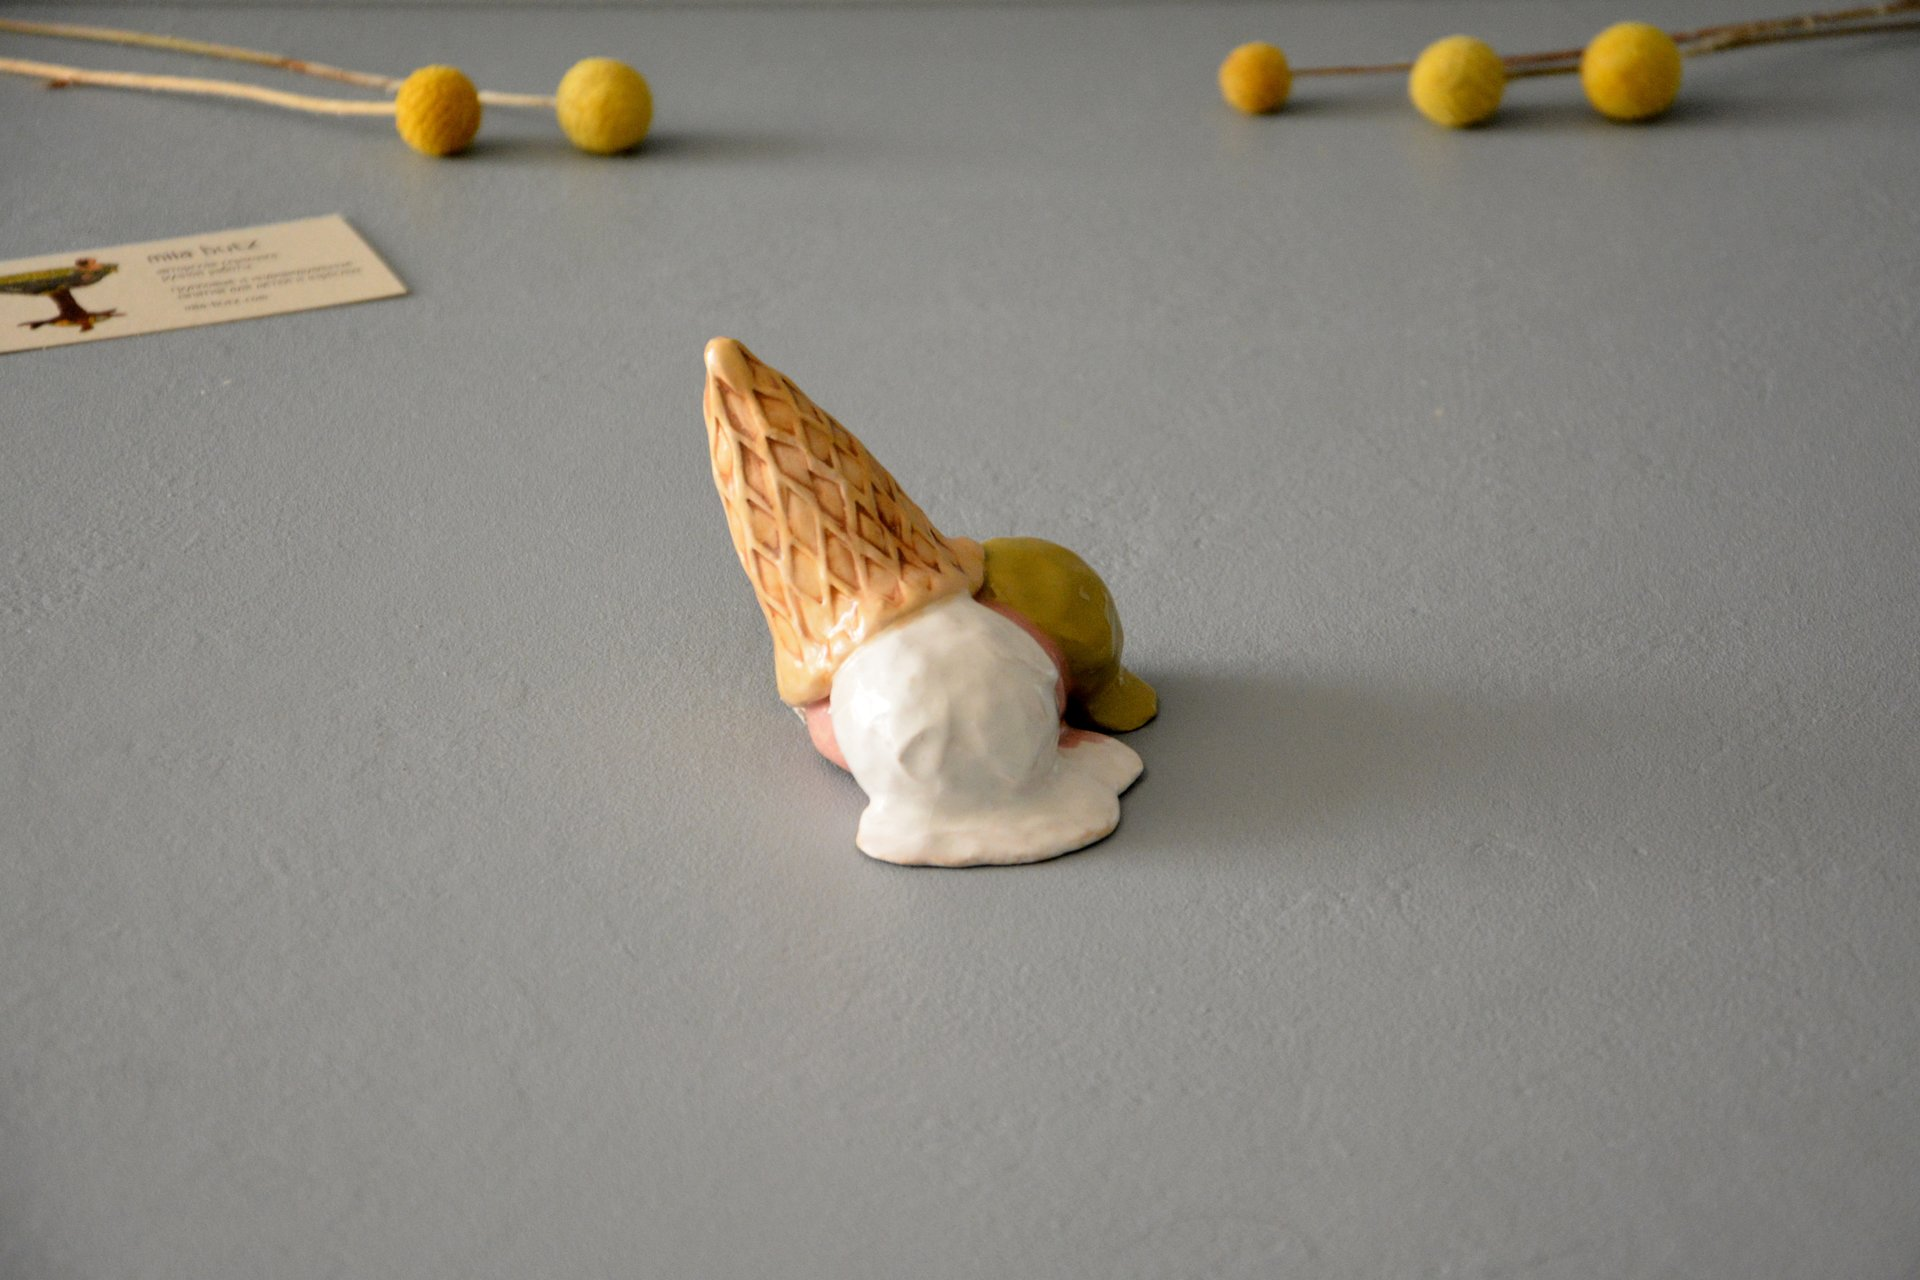 Fallen Ice Cream - Ceramic other figures, height - 5 cm, photo 3 of 4.